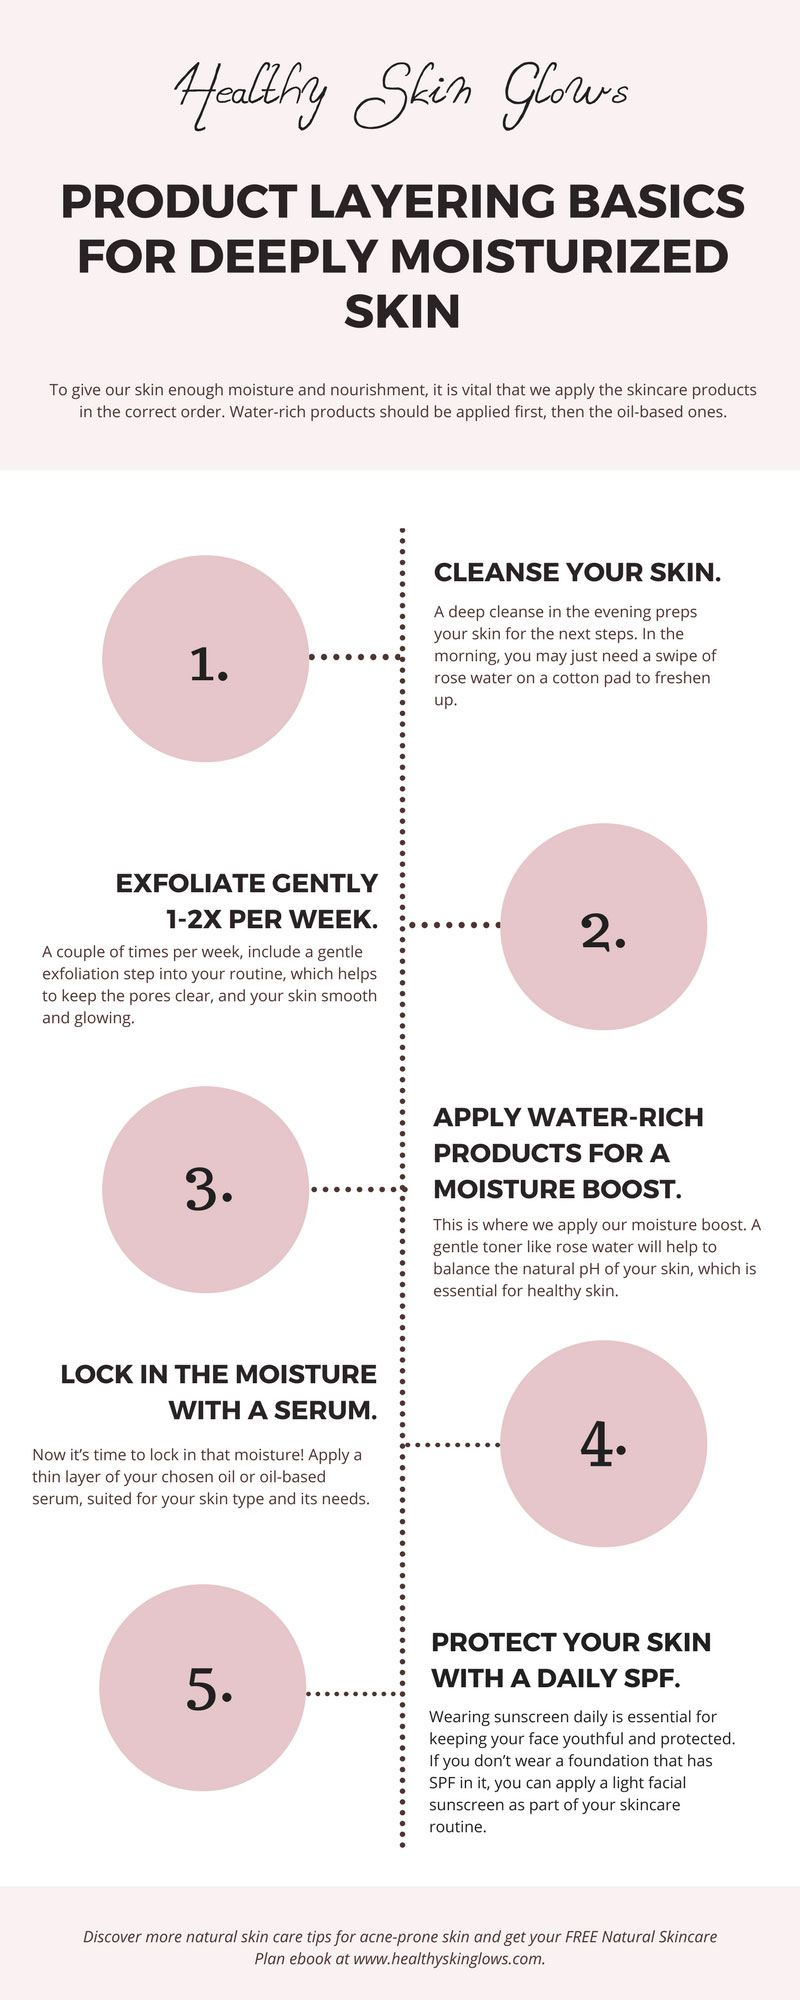 Healthy Skin Glows - How to Layer Products